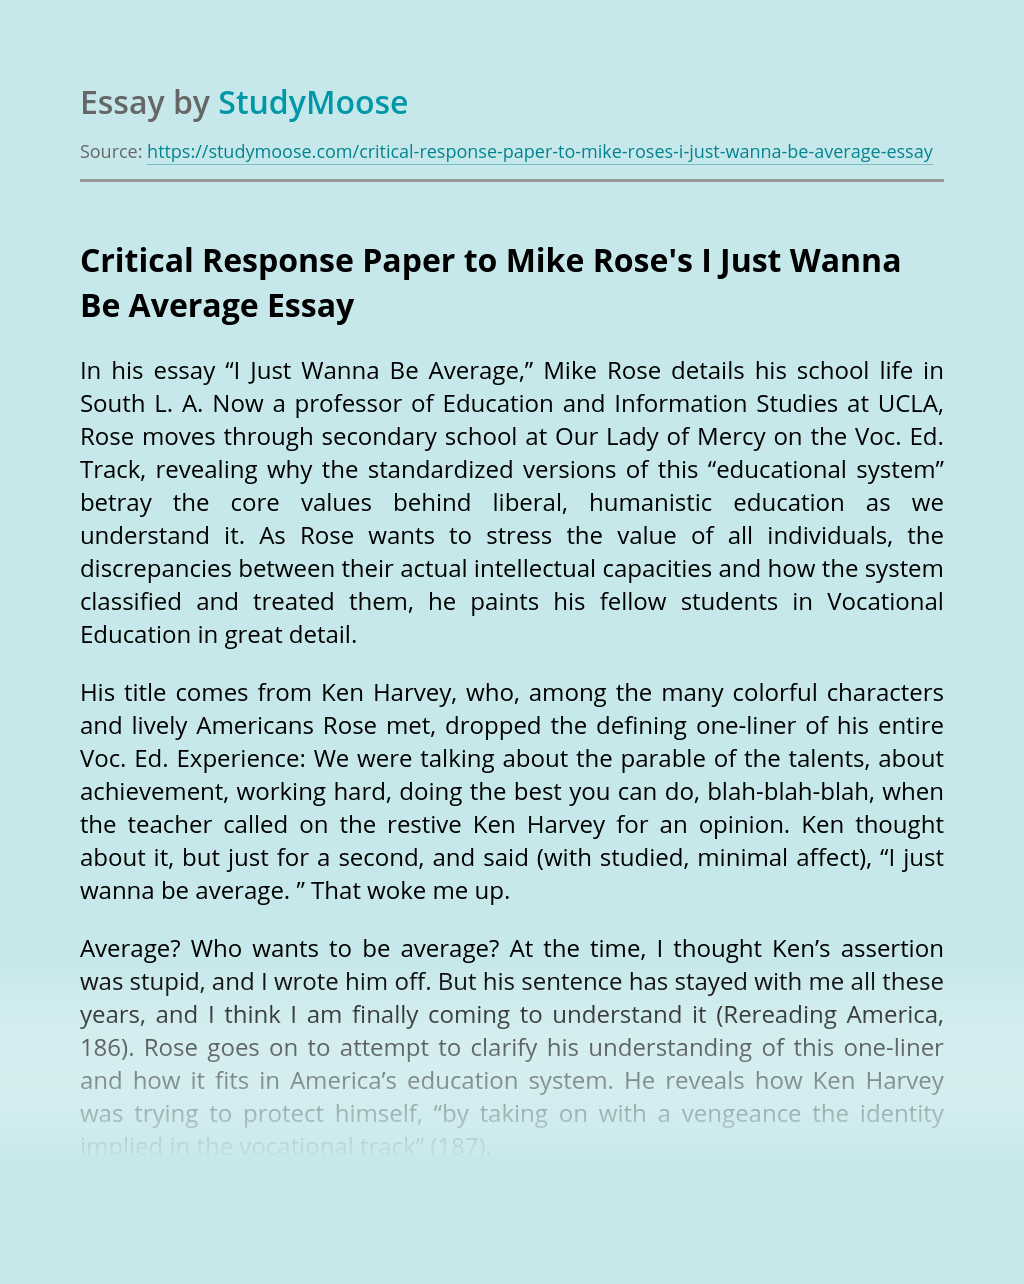 Critical Response Paper to Mike Rose's I Just Wanna Be Average